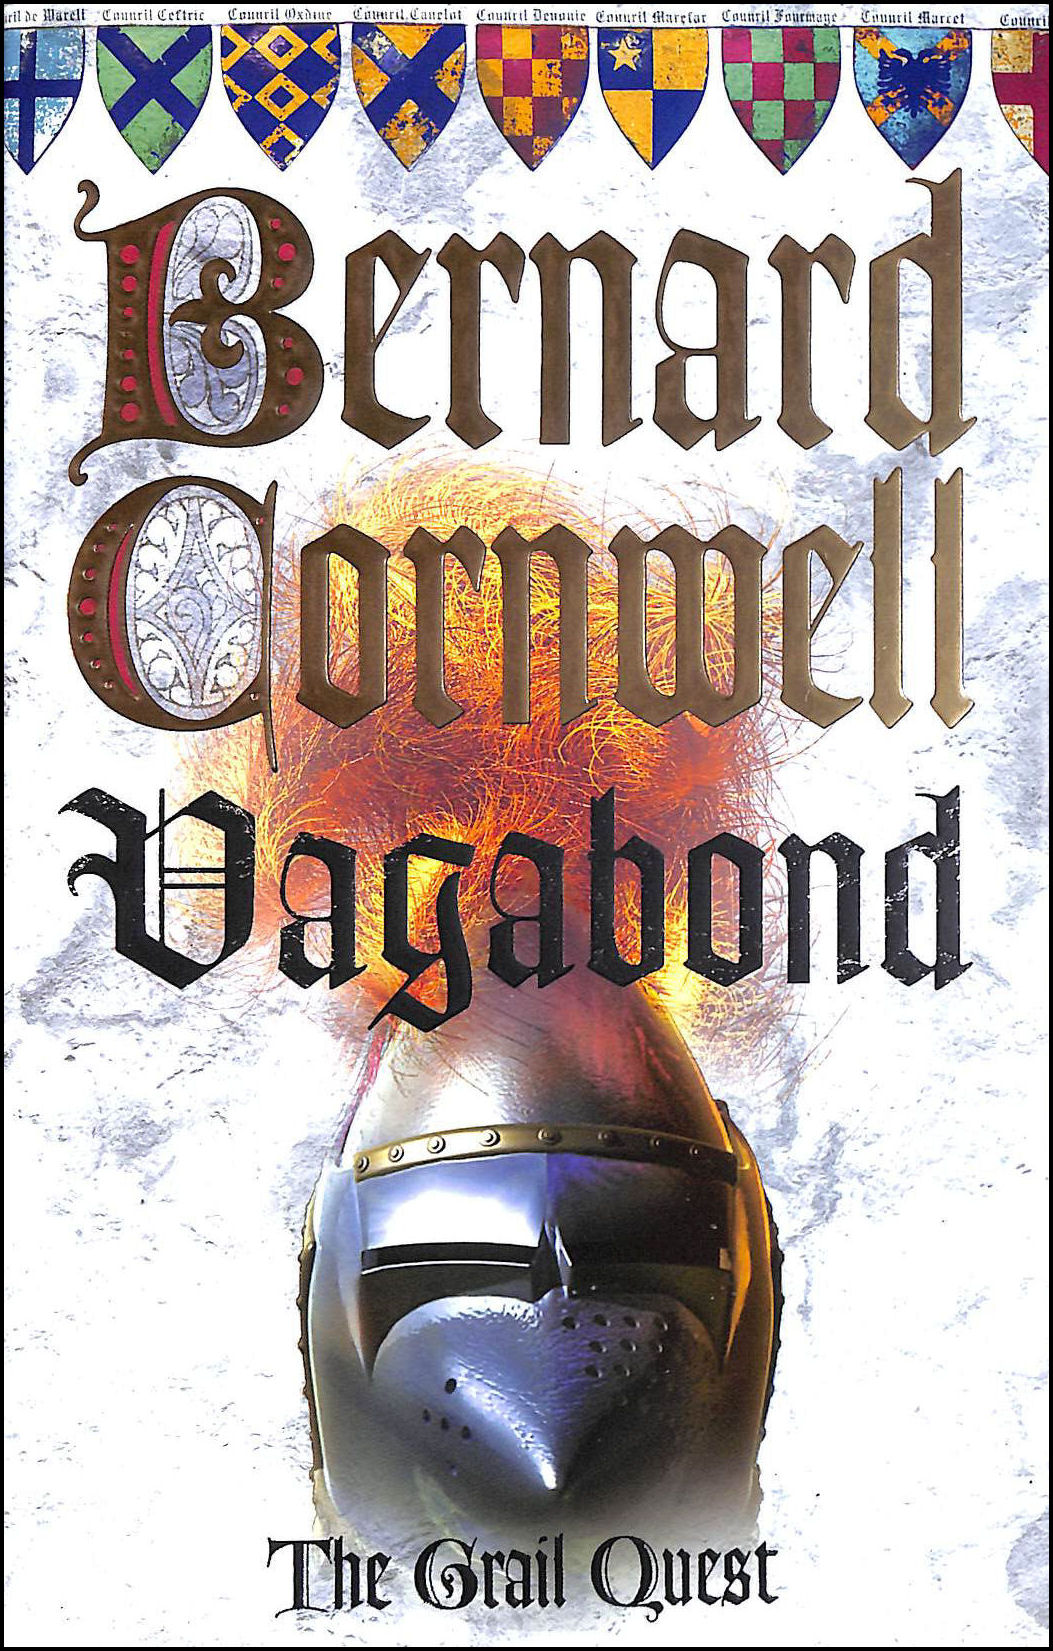 Vagabond, The Grail Quest, Cornwell, Bernard